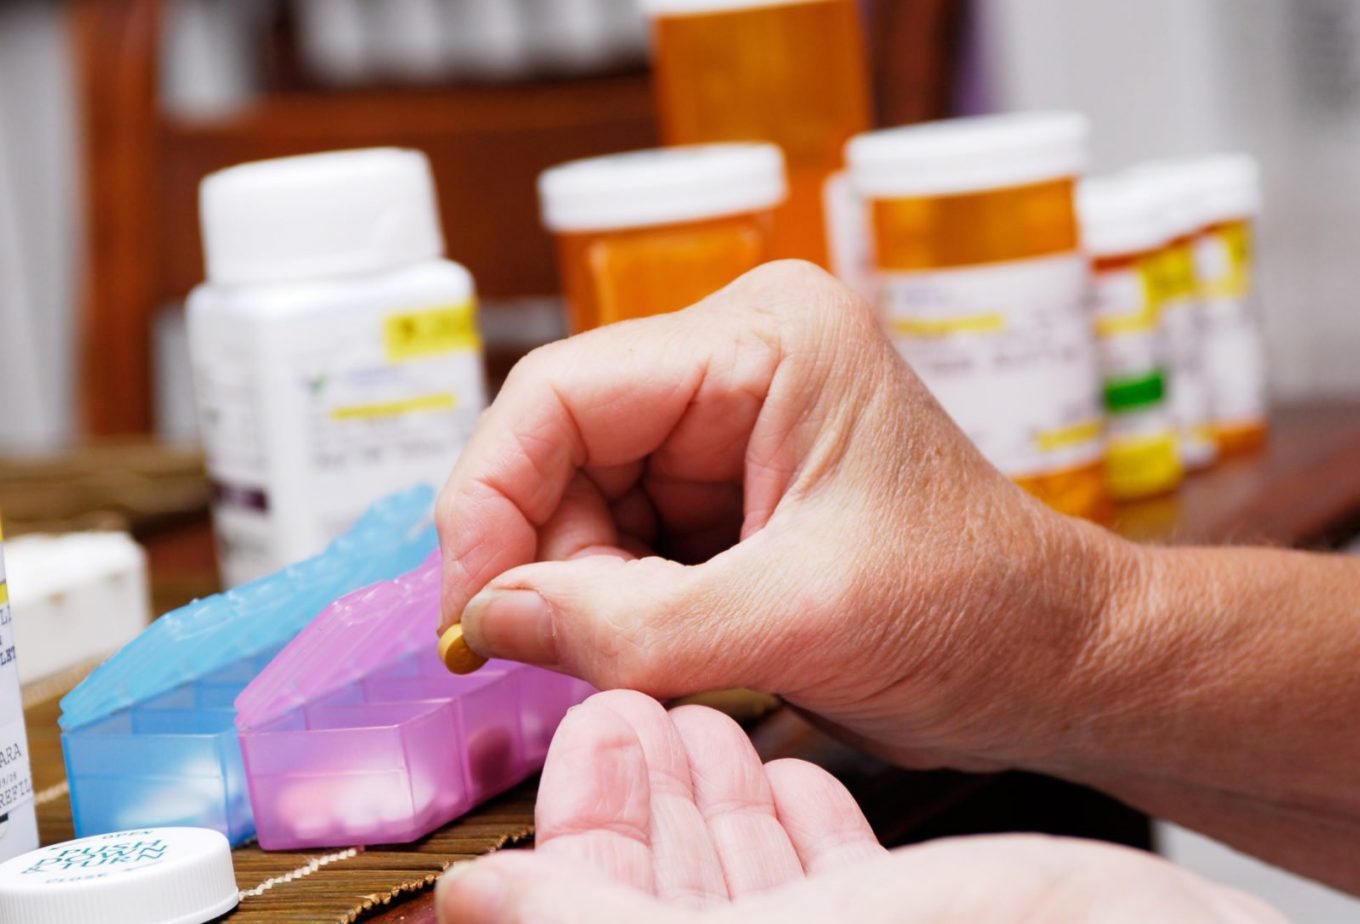 Tip #4: Prescription Medications